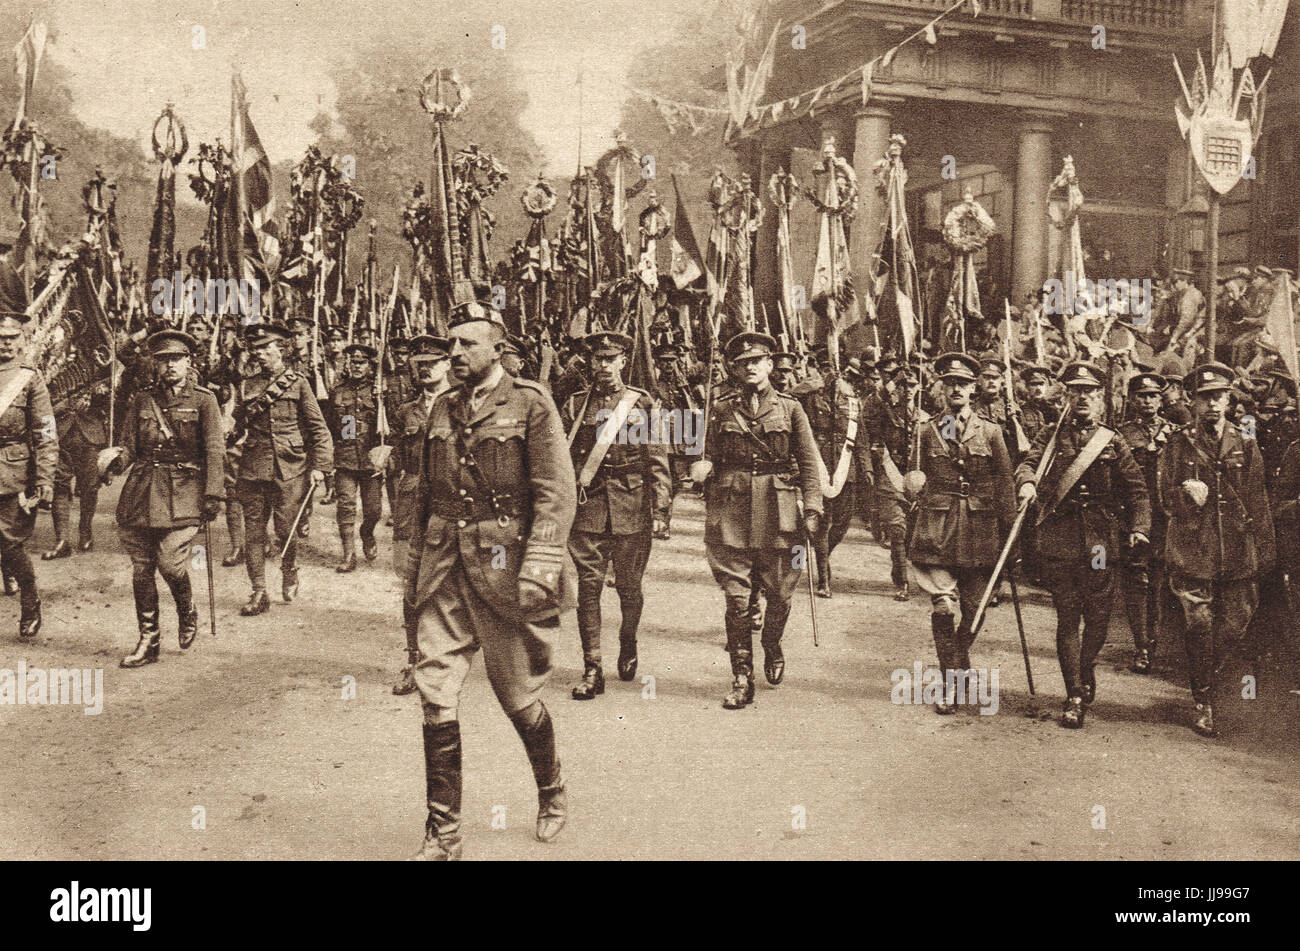 Victory parade, Army colours & standards - Stock Image